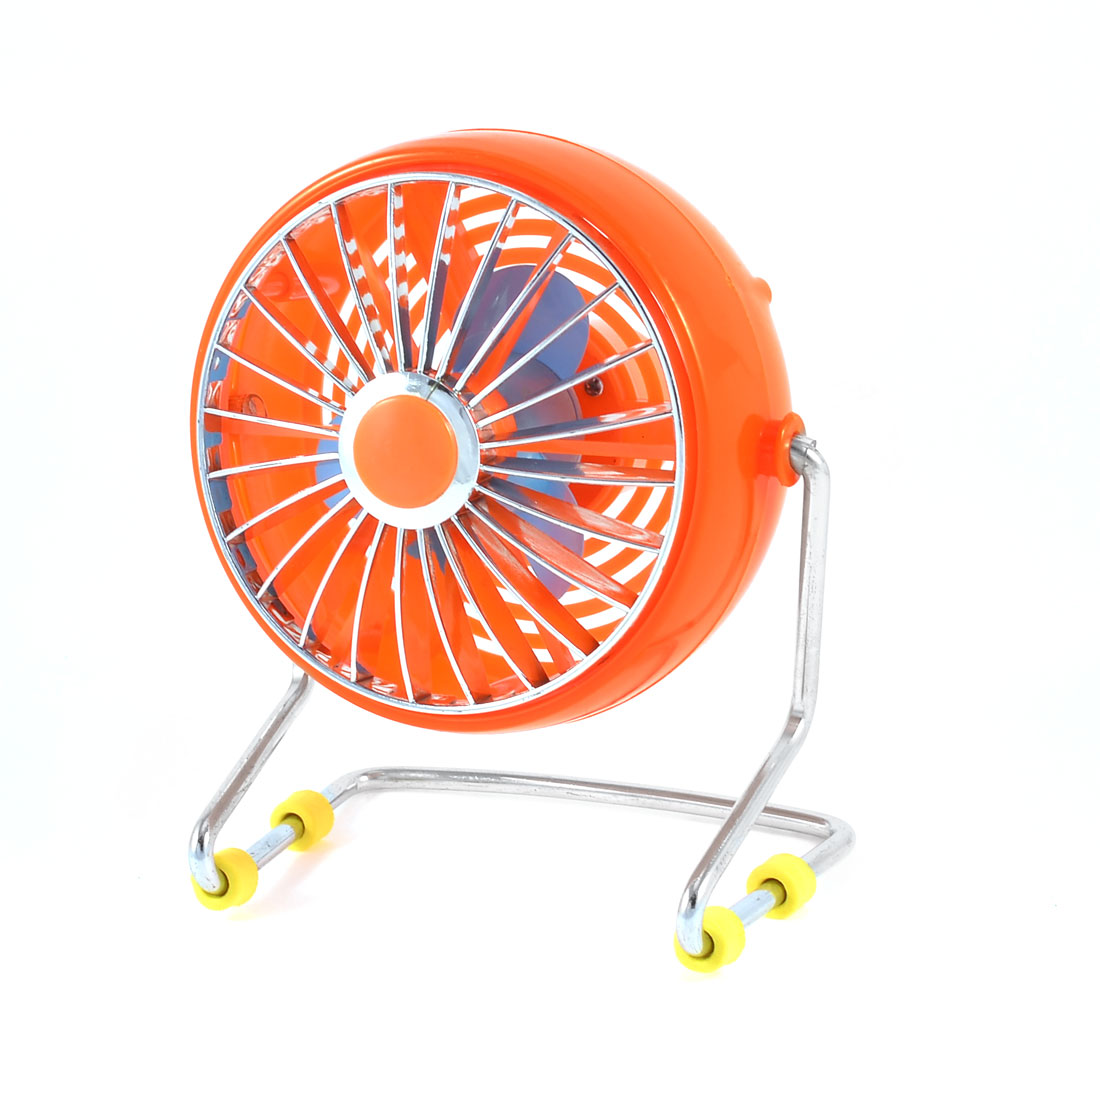 Portable Notebook Laptop Copmuter Cooler Mini USB Desk Fan Orange 4""